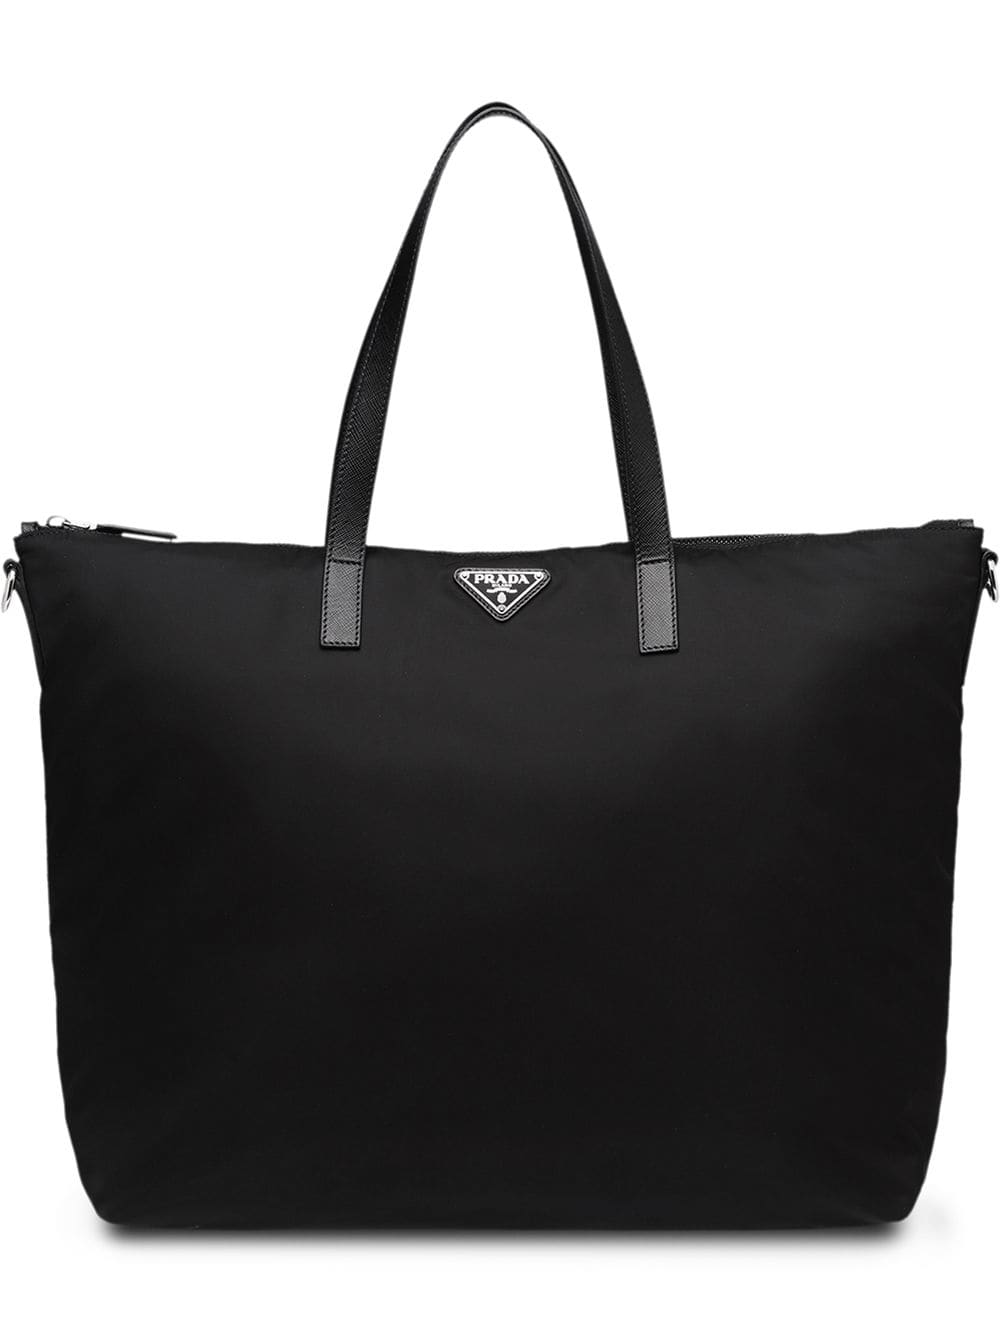 306ae6da43 Prada Logo Plaque Tote Bag - Black In F0002 Black | ModeSens